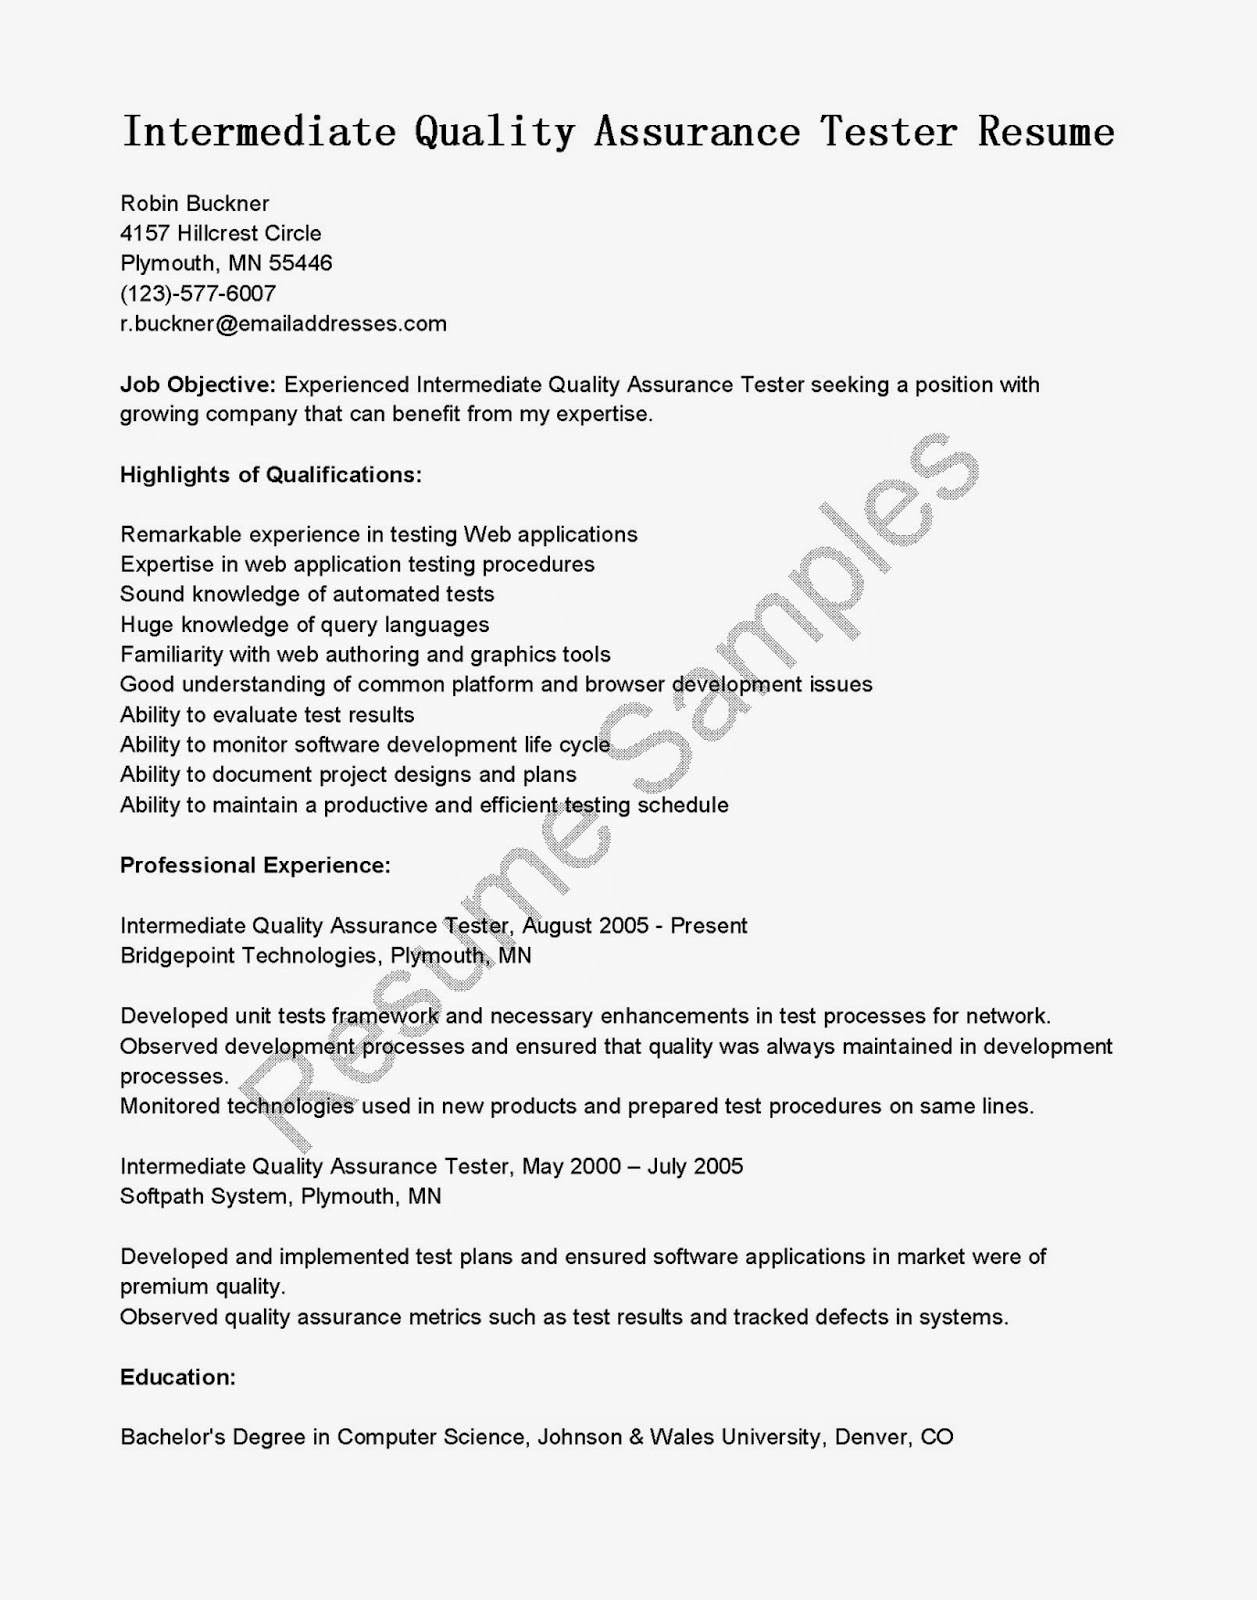 Resume For Quality Assurance Manager Resume Samples Intermediate Quality Assurance Tester